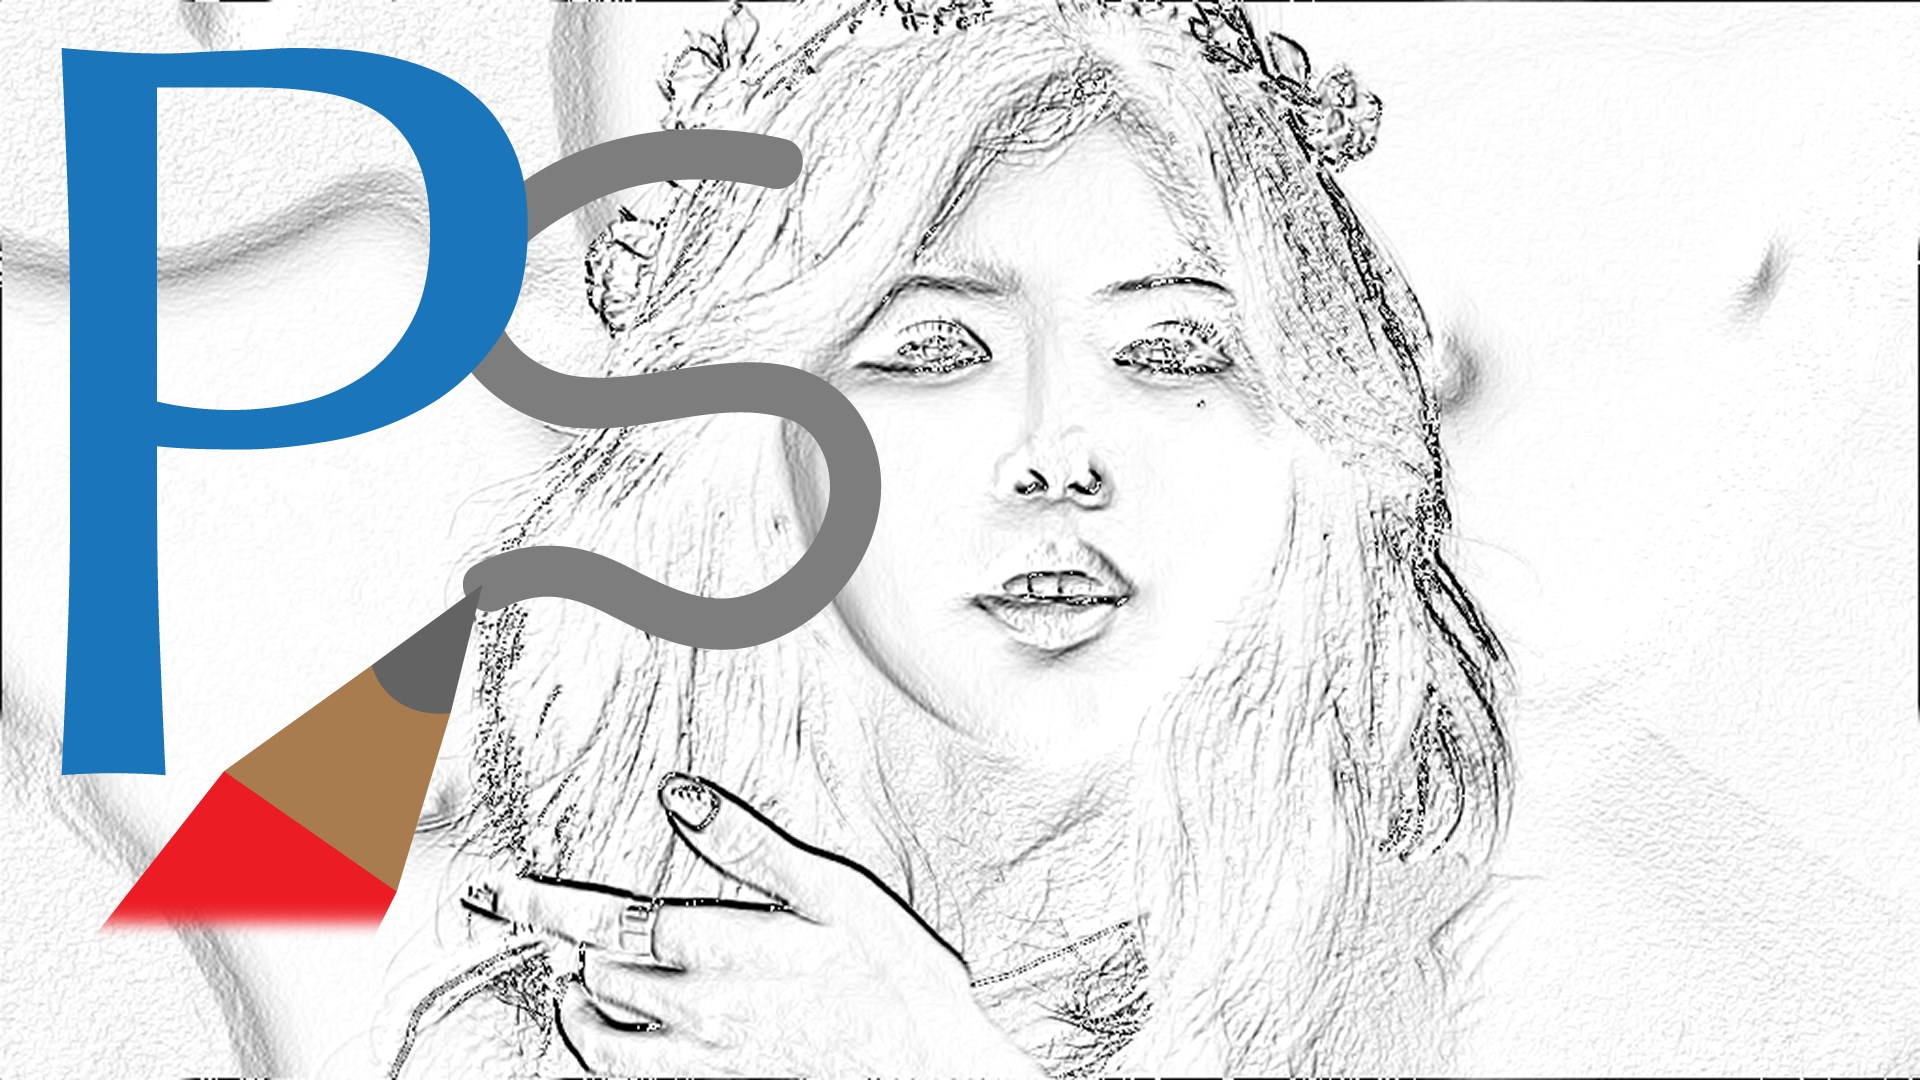 Pencil Sketch Creator App